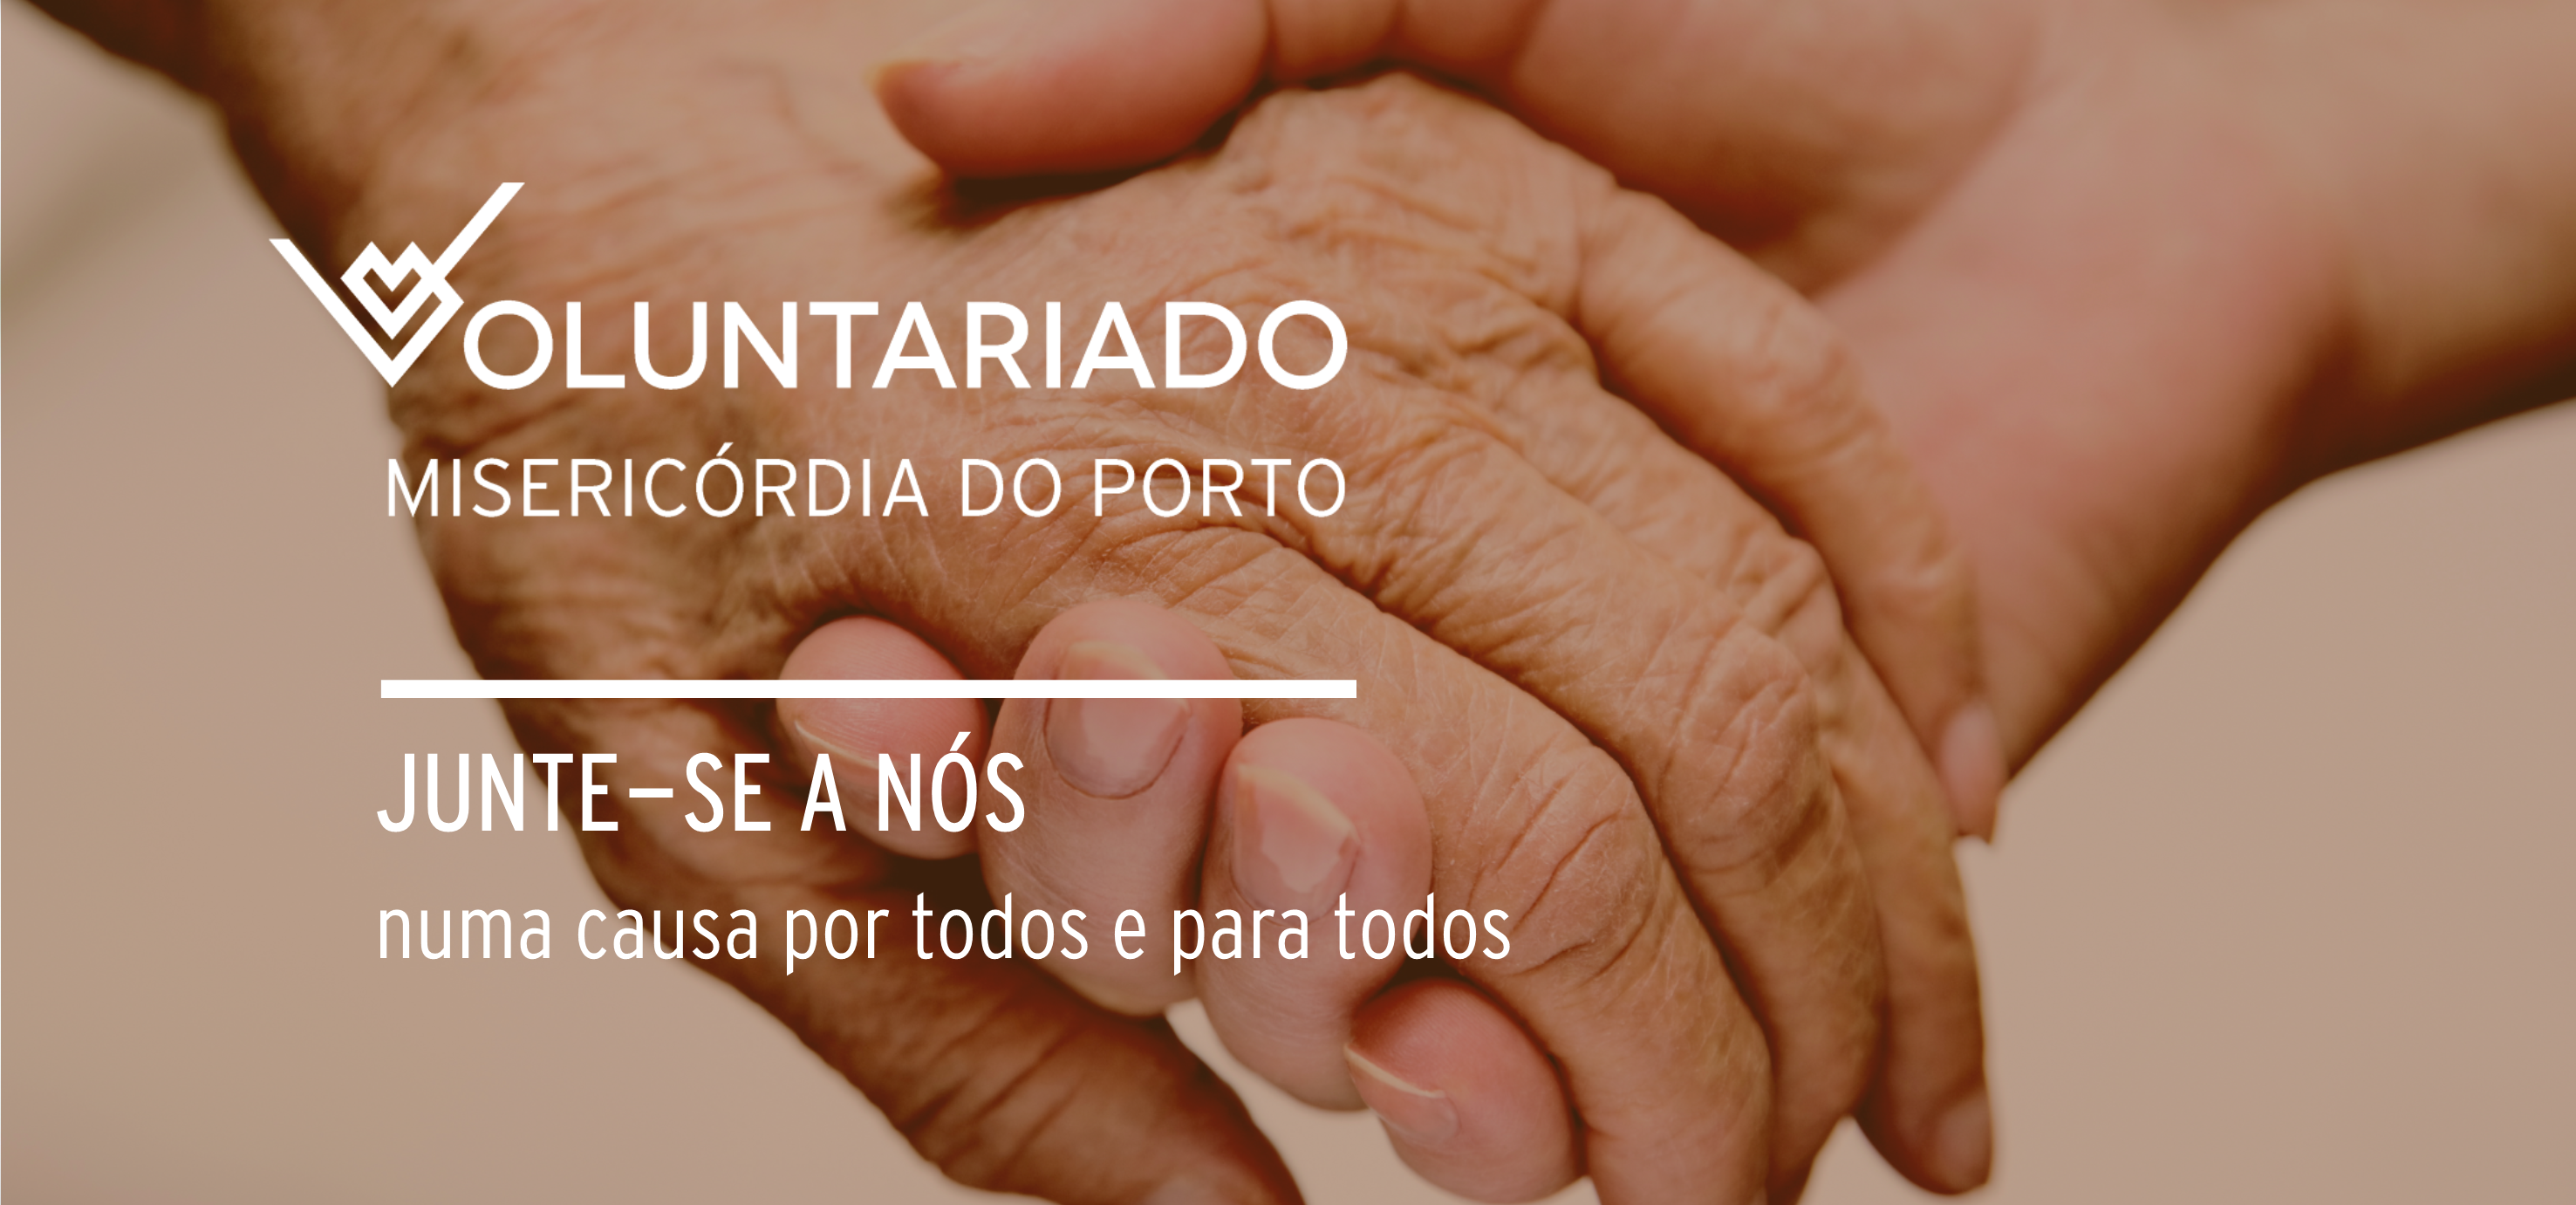 https://www.scmp.pt/assets/misc/img/Slideshow/2018/Voluntariado/Banner%20Voluntariado%20social.png